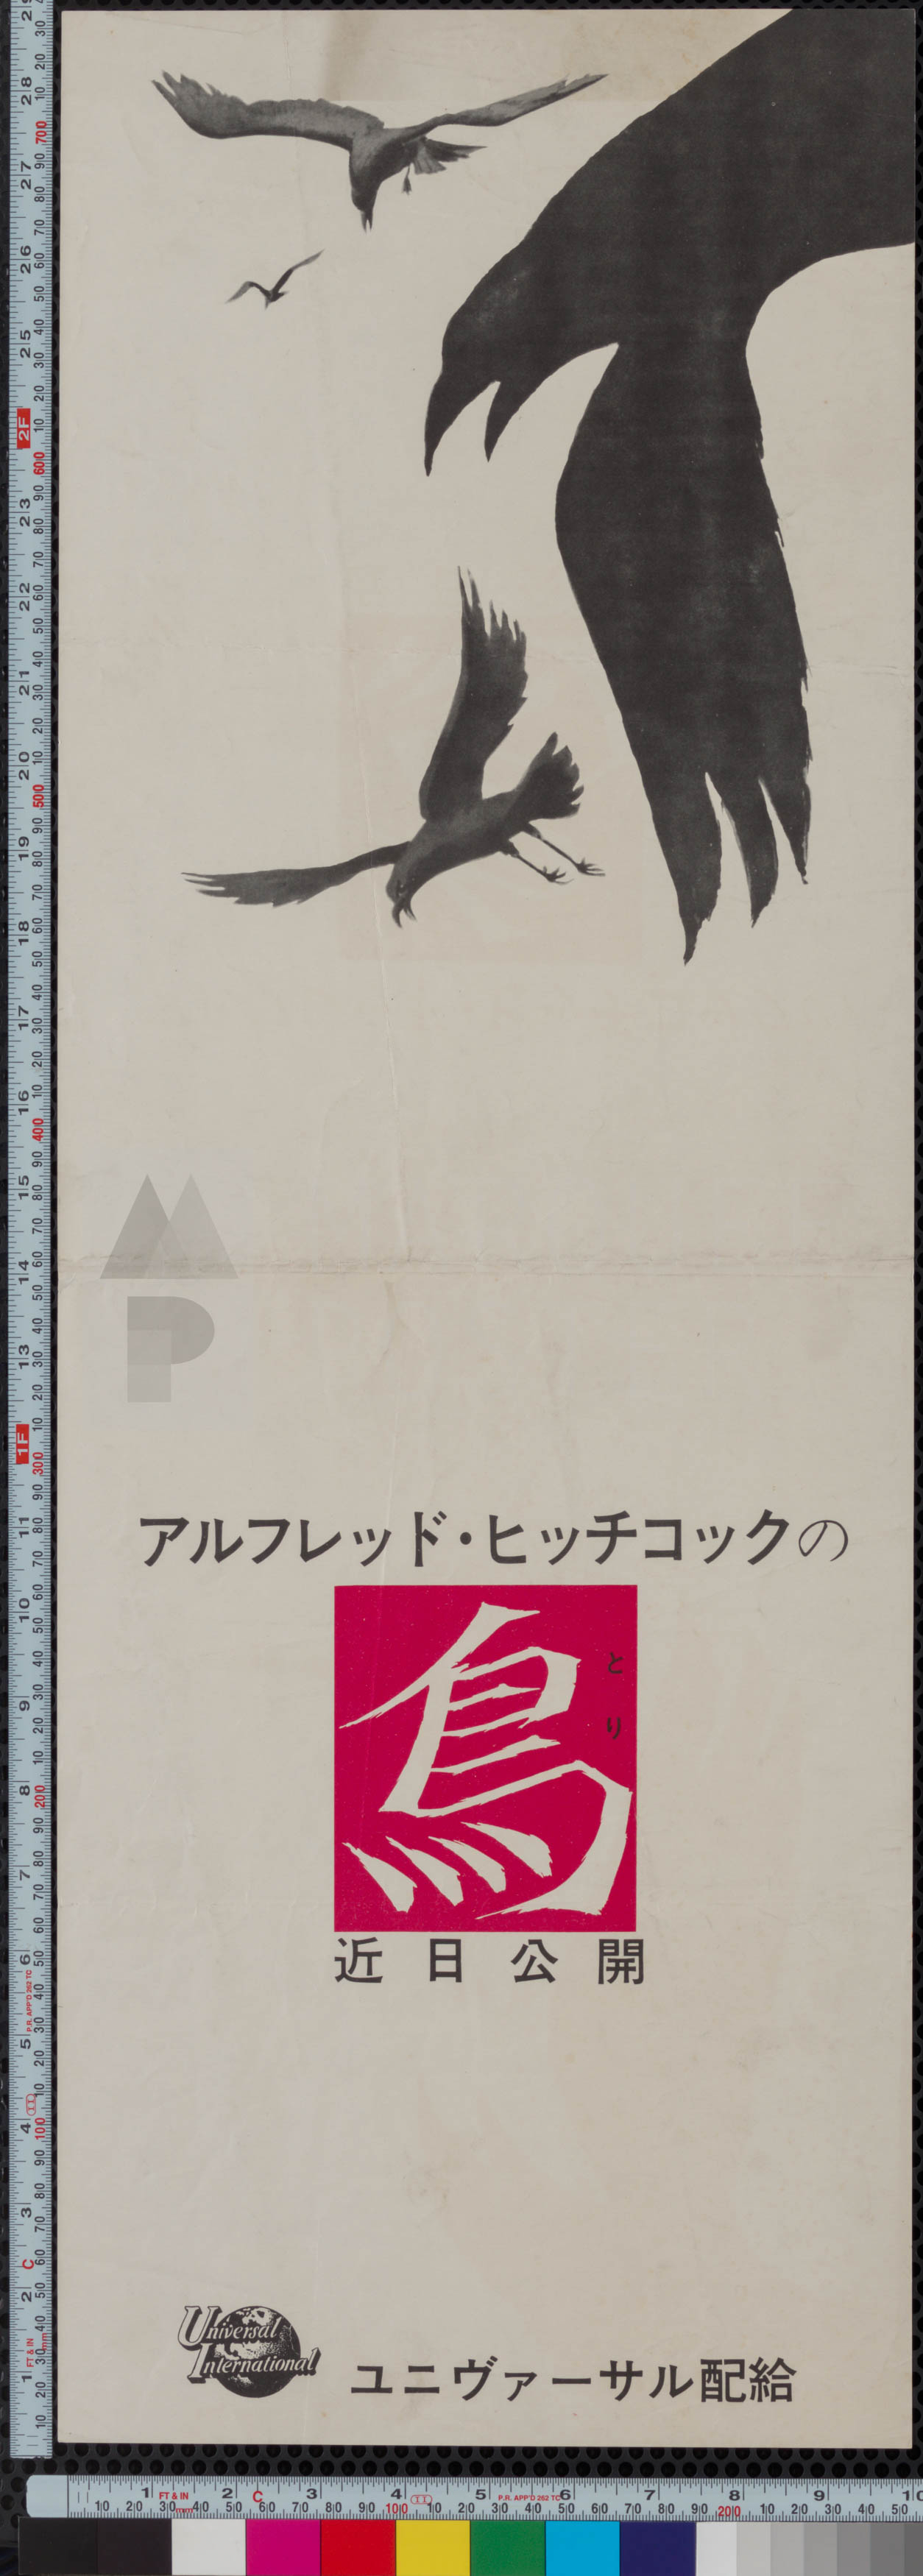 3-birds-japanese-speed-1963-02